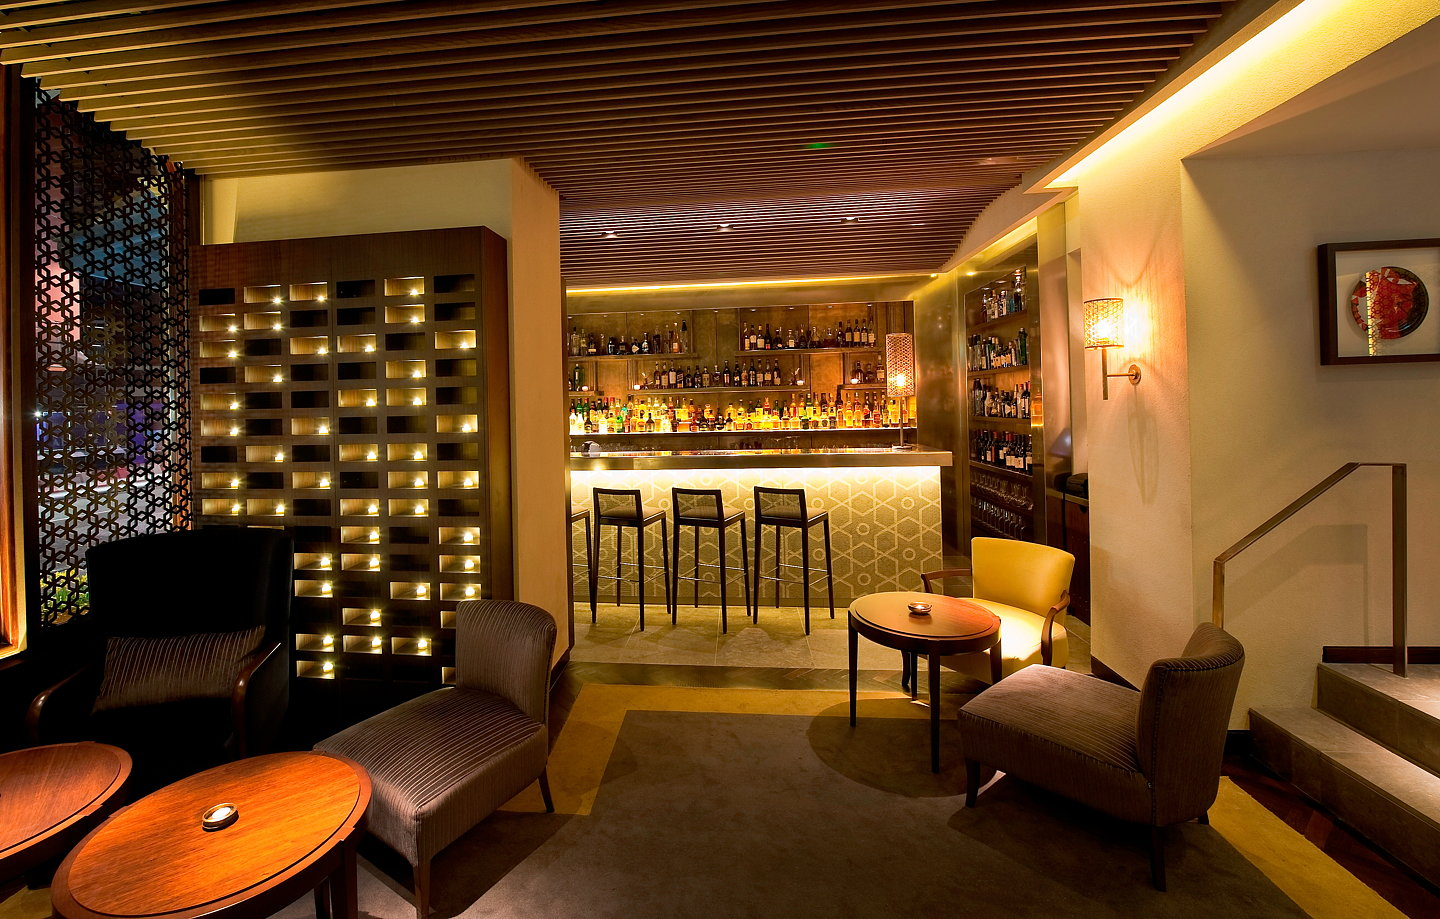 Quilon Restaurant Interior 01 ...